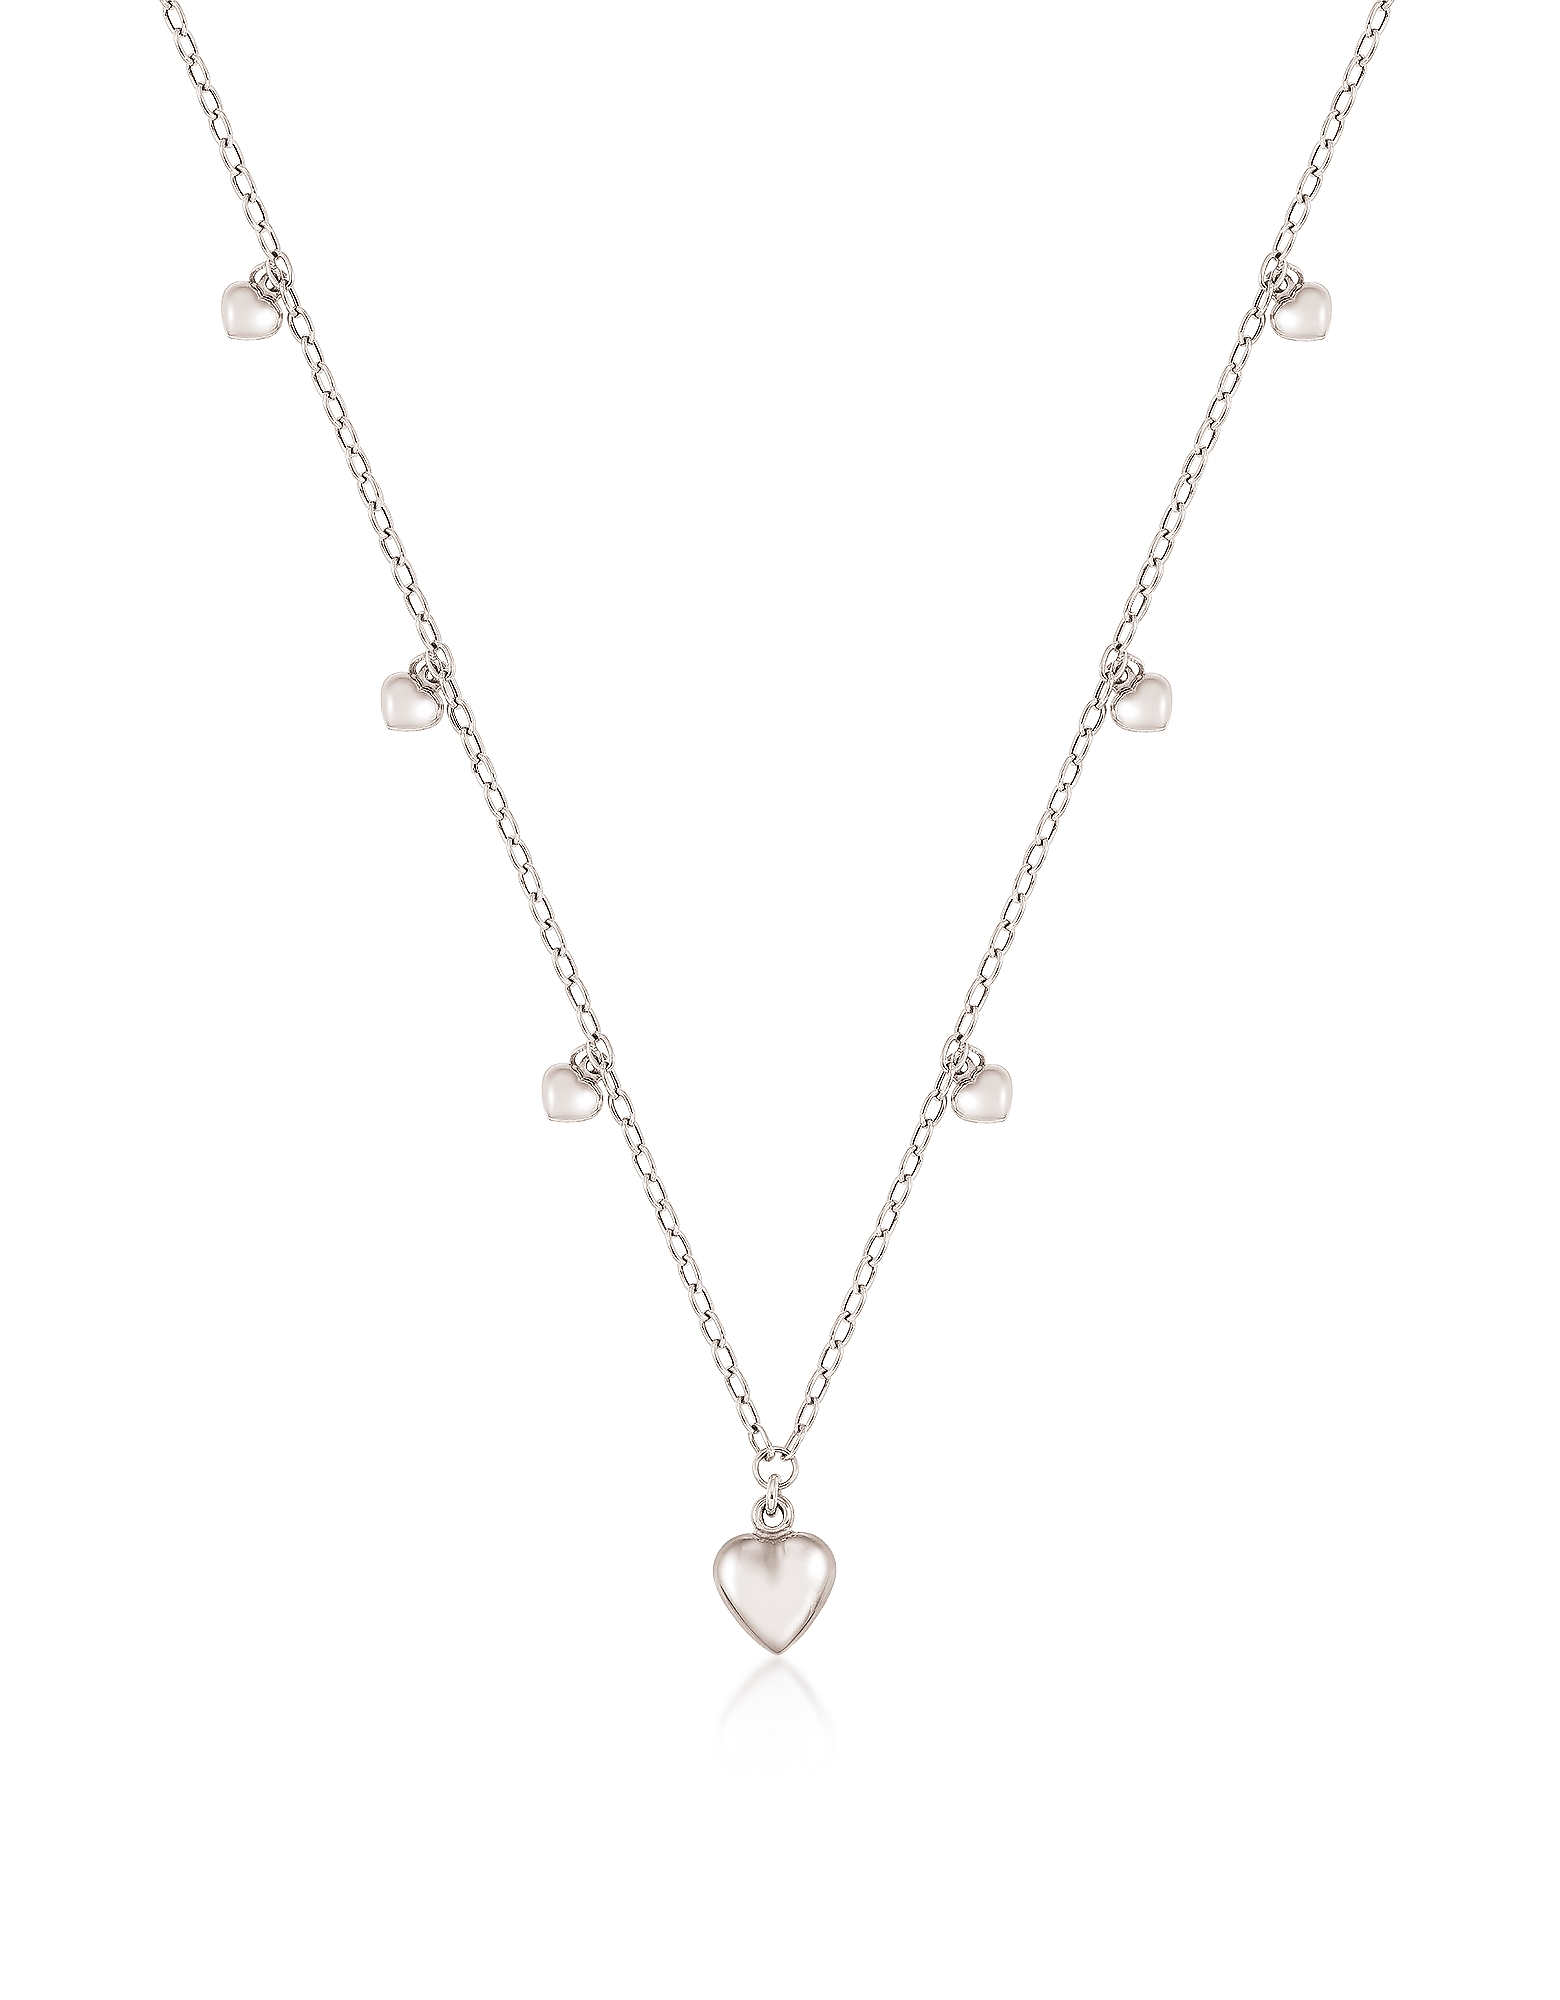 Nomination  Necklaces Sterling Silver Mini Hearts Charm Necklace